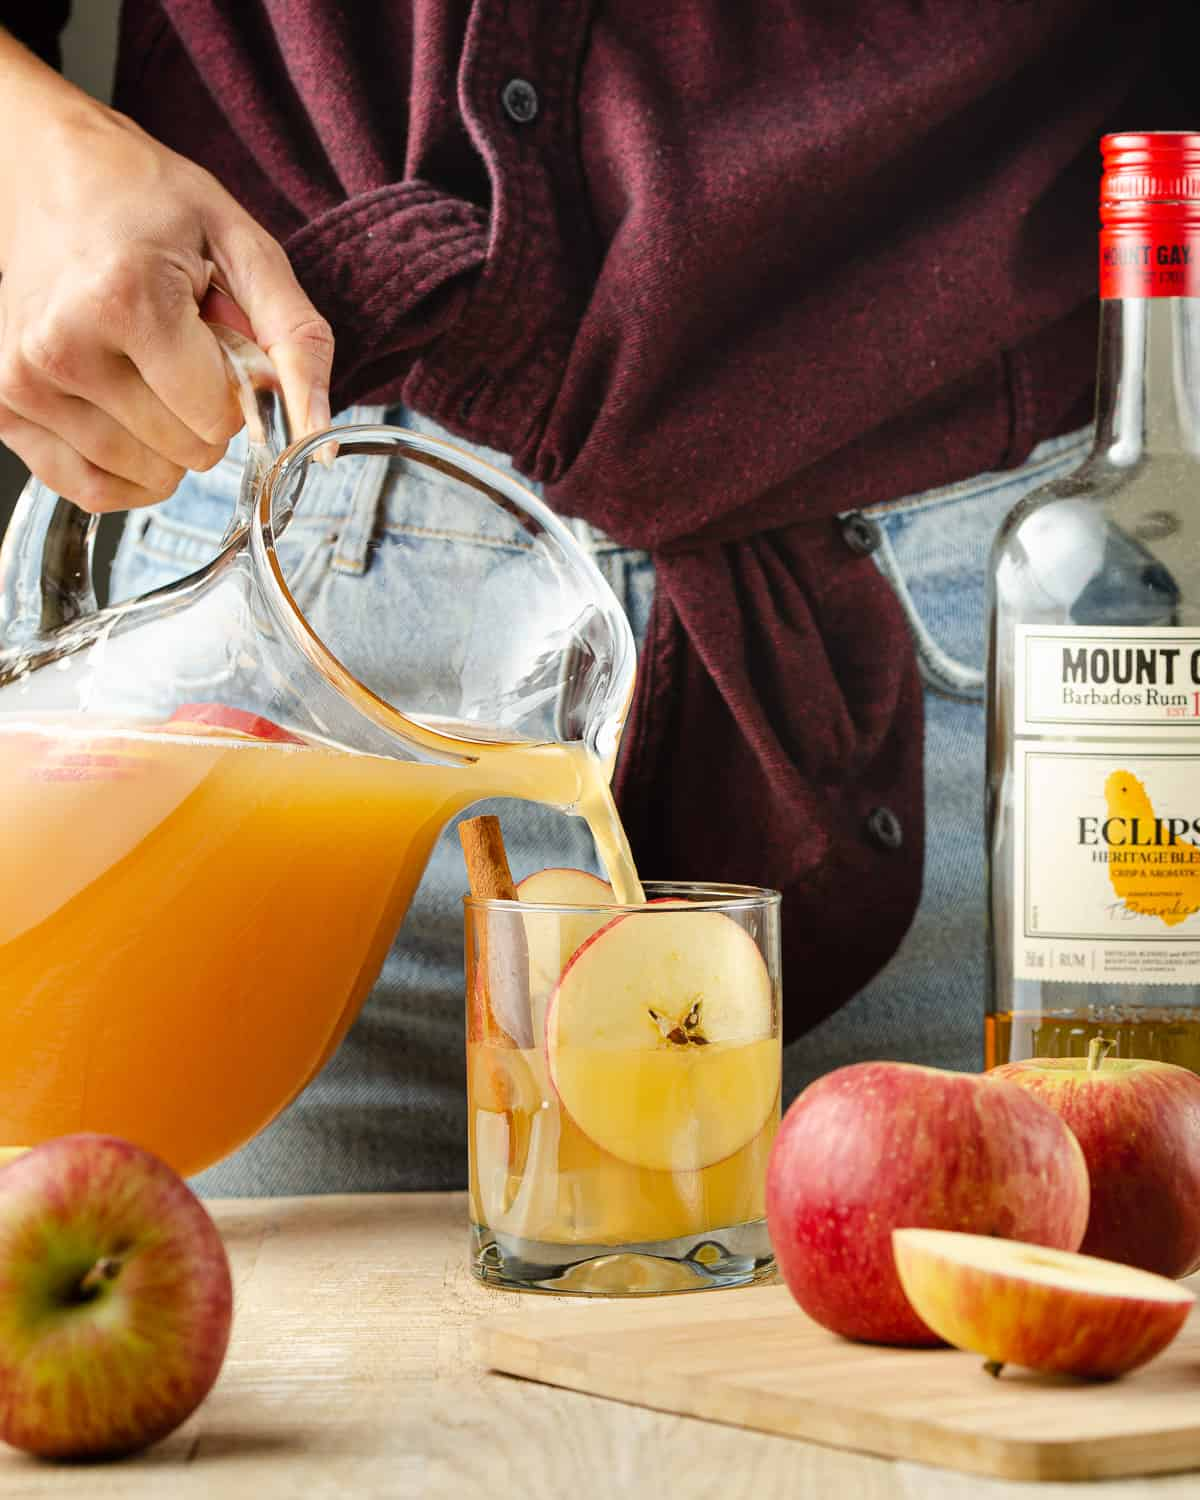 Pouring spiked apple cider into a glass.